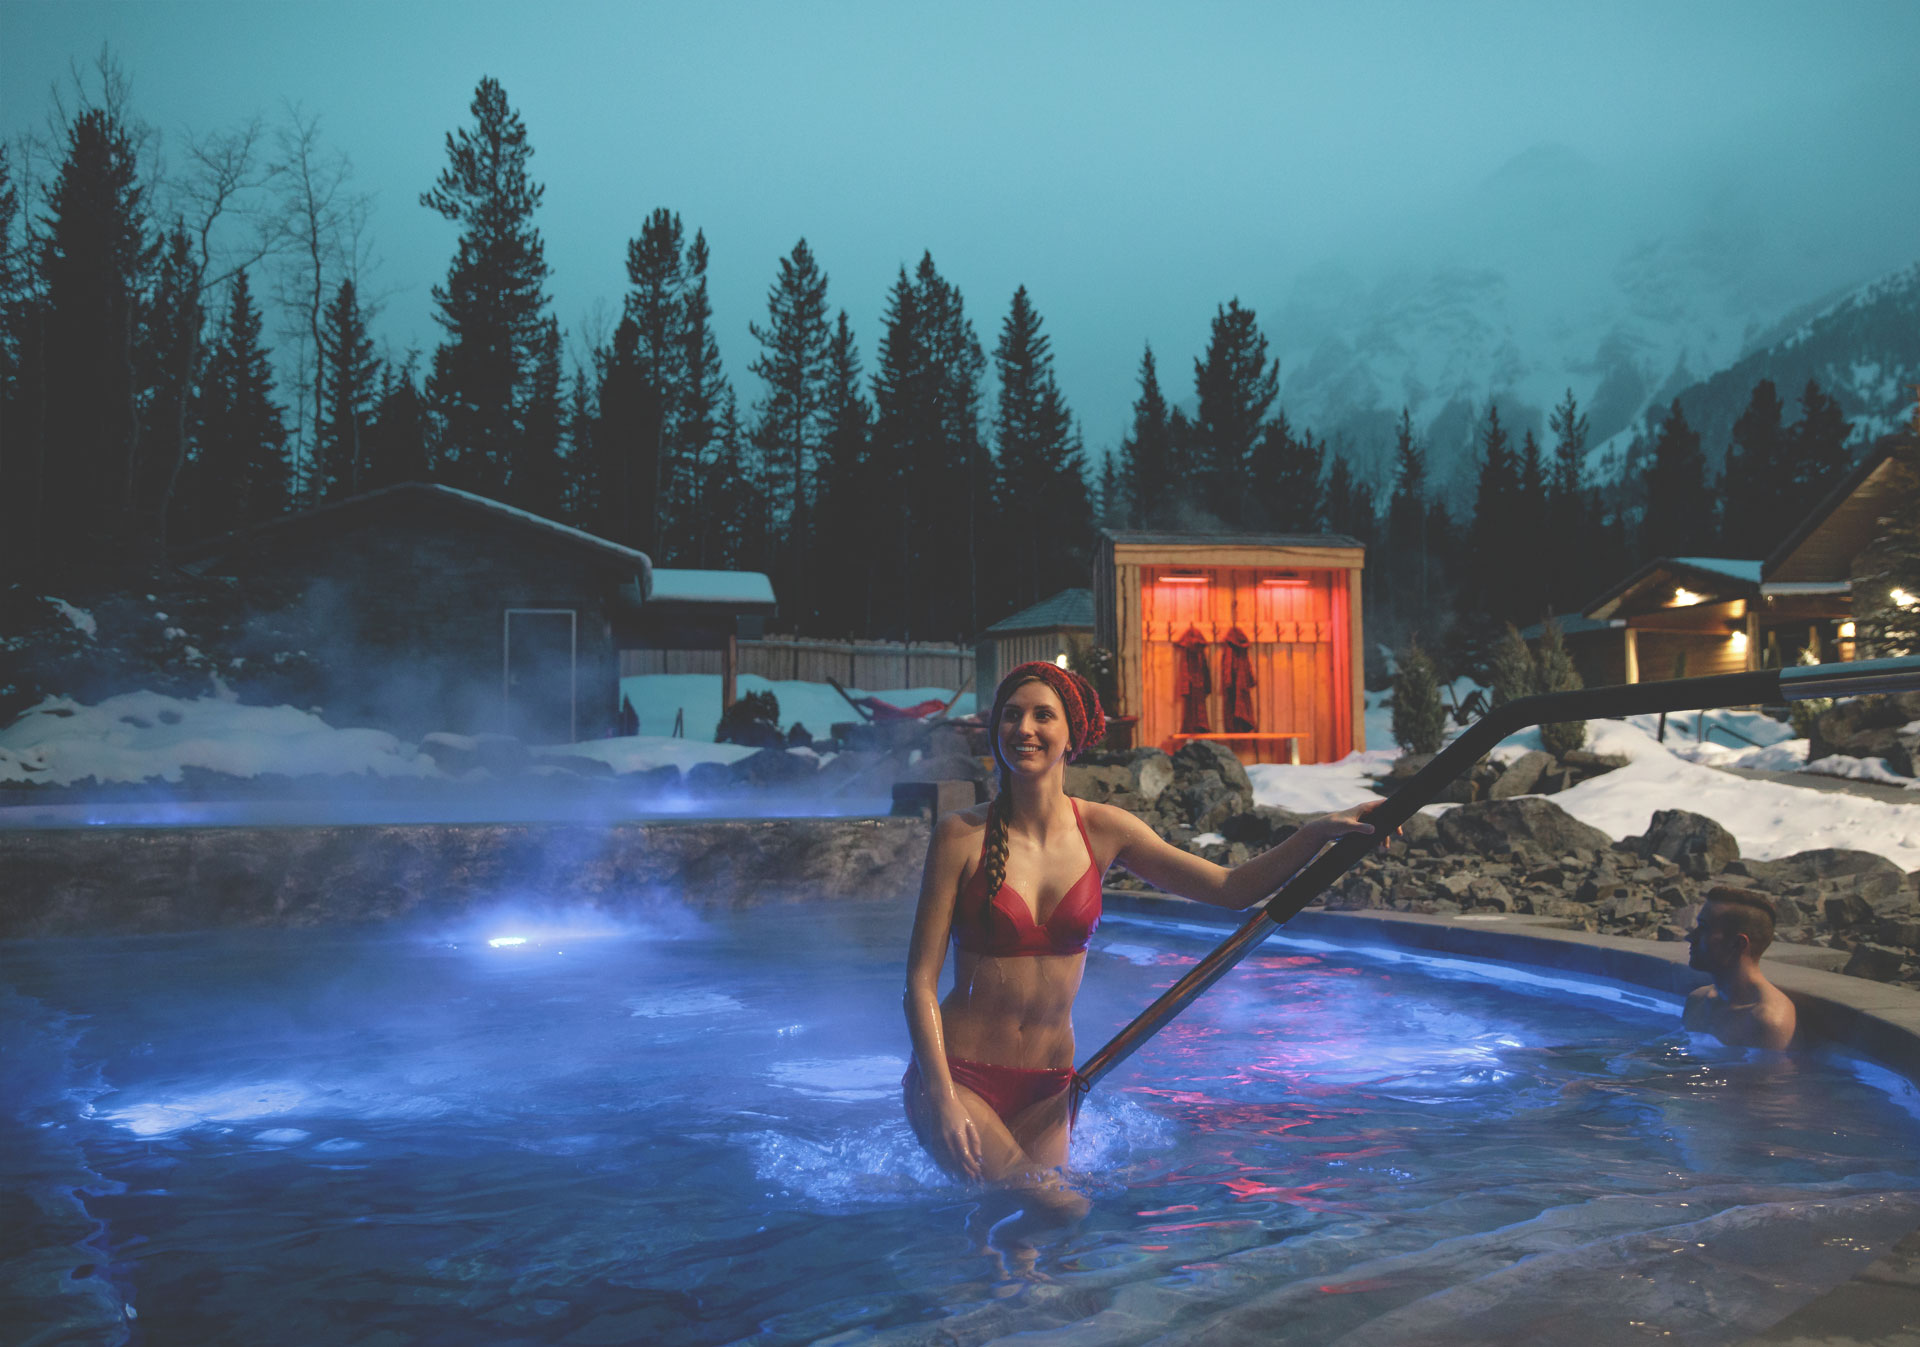 You can purchase a day pass at the Spa Lodge reception desk (Photo credit: Travel Alberta/Mike Seehagel).